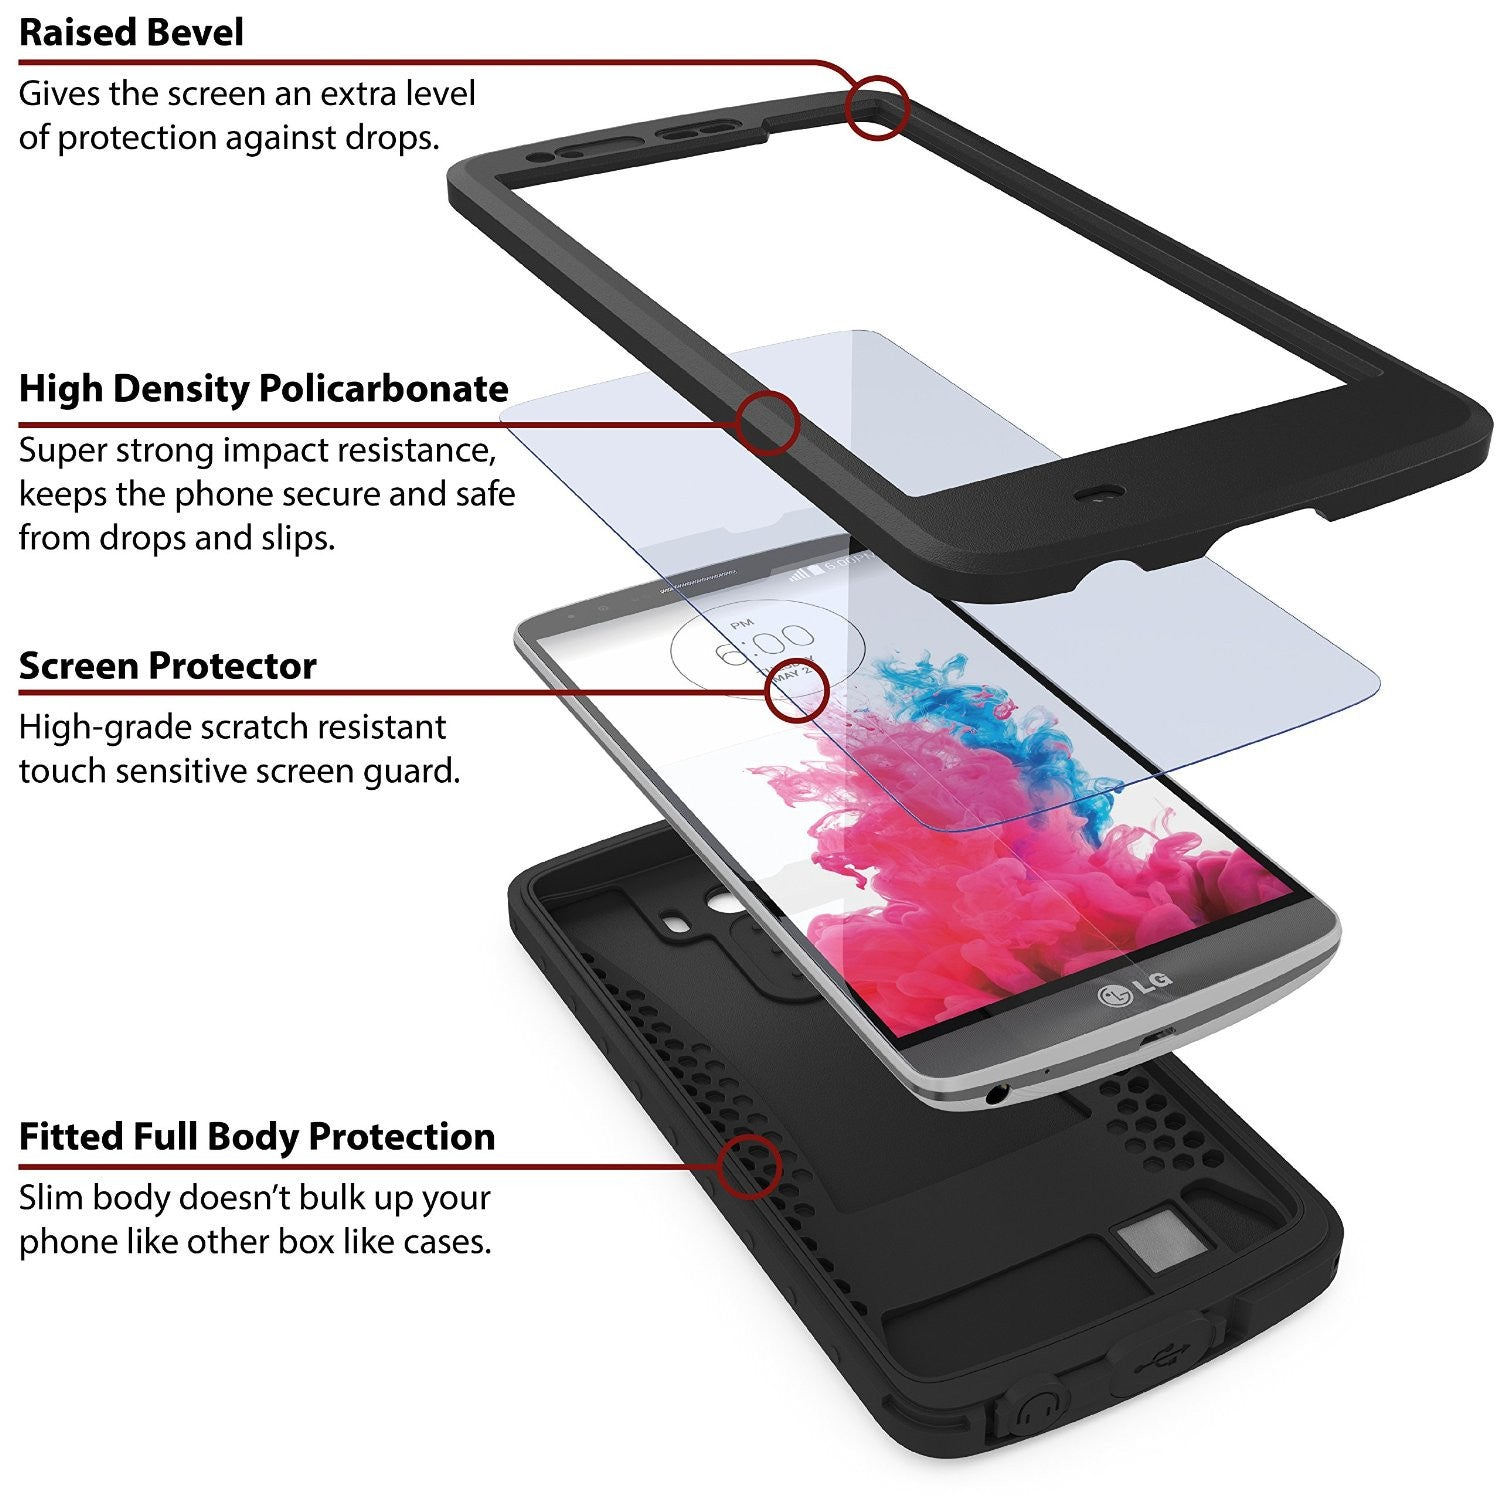 LG G3 Waterproof Case - Ghostek Atomic Black